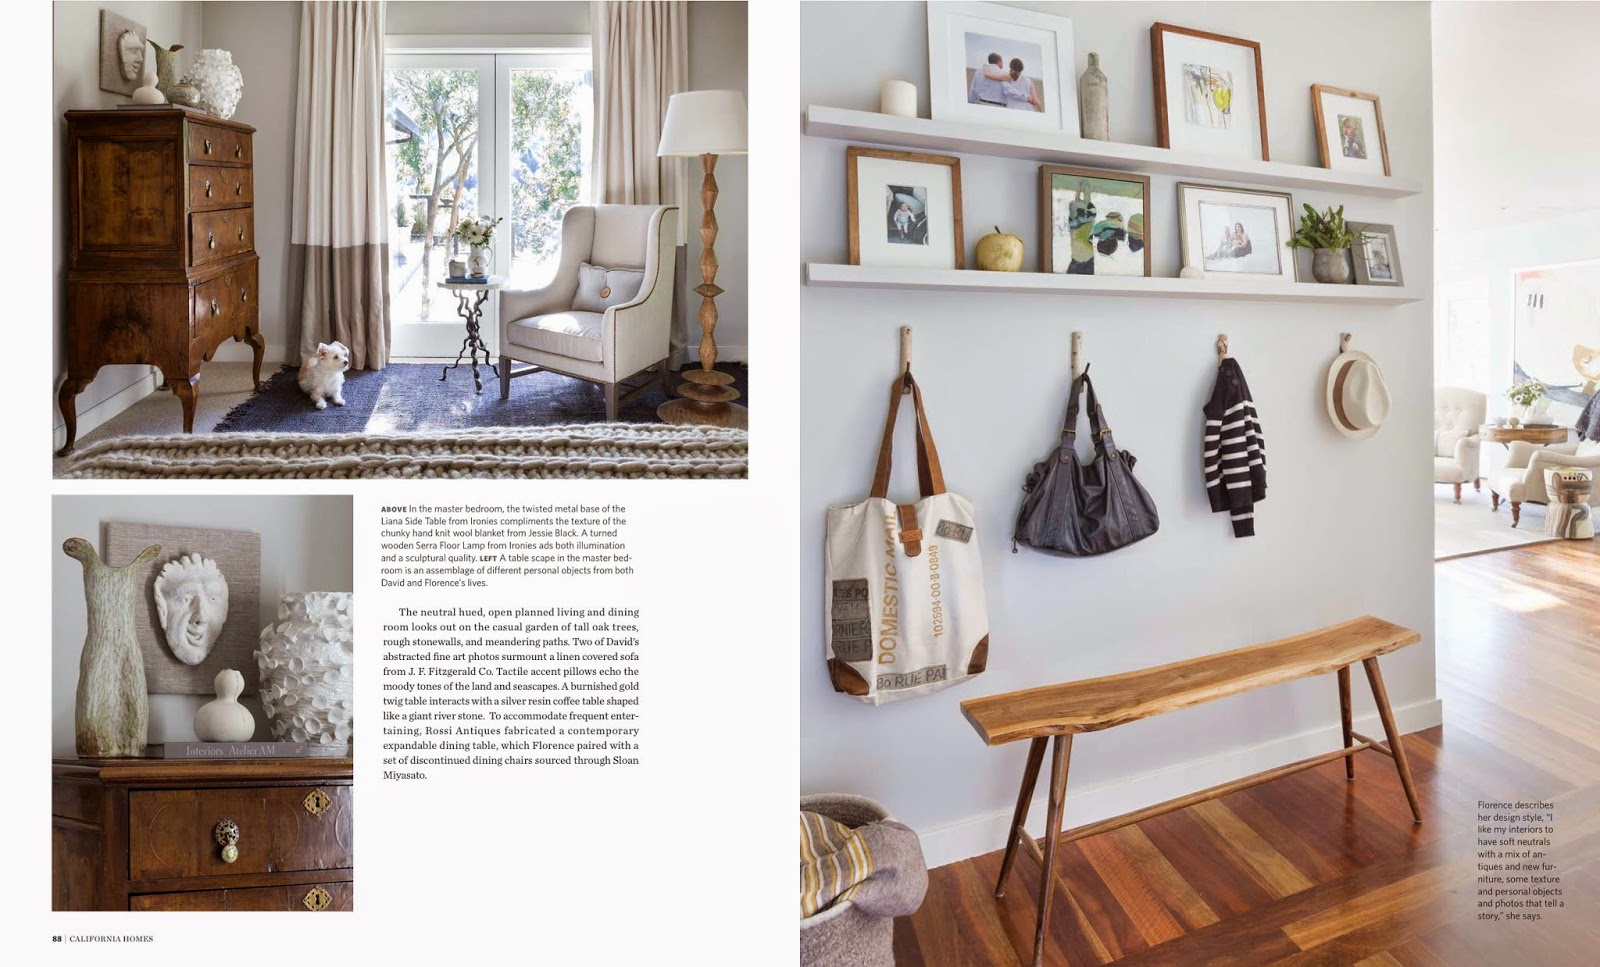 Posted By Kendra Boutell At 06:59. Labels: California Homes Magazine:  Photographer David Duncan Livingston And Designer Florence Choux Livingston